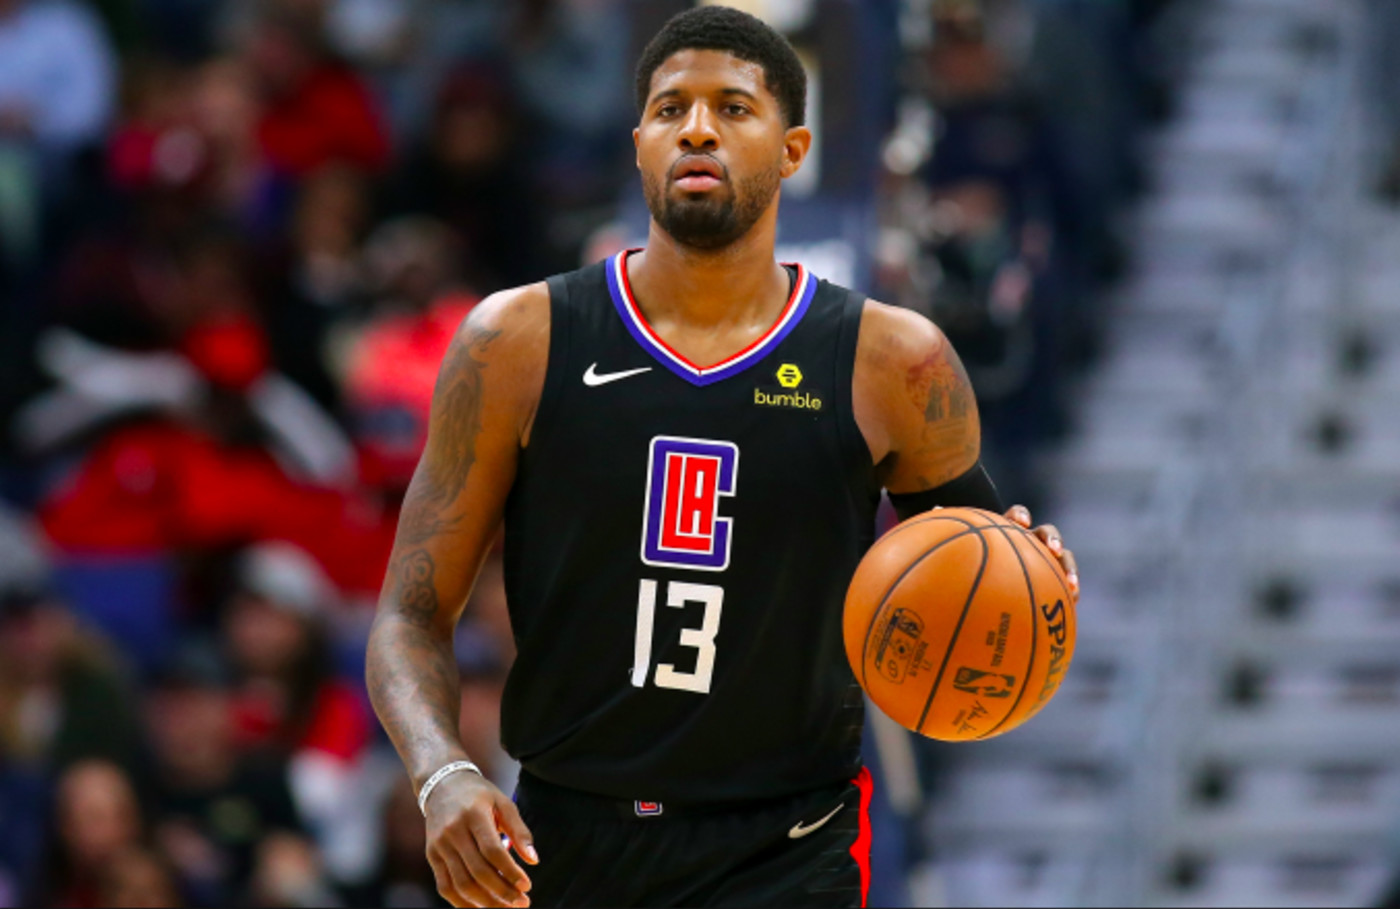 Paul George #13 of the LA Clippers reacts during a game